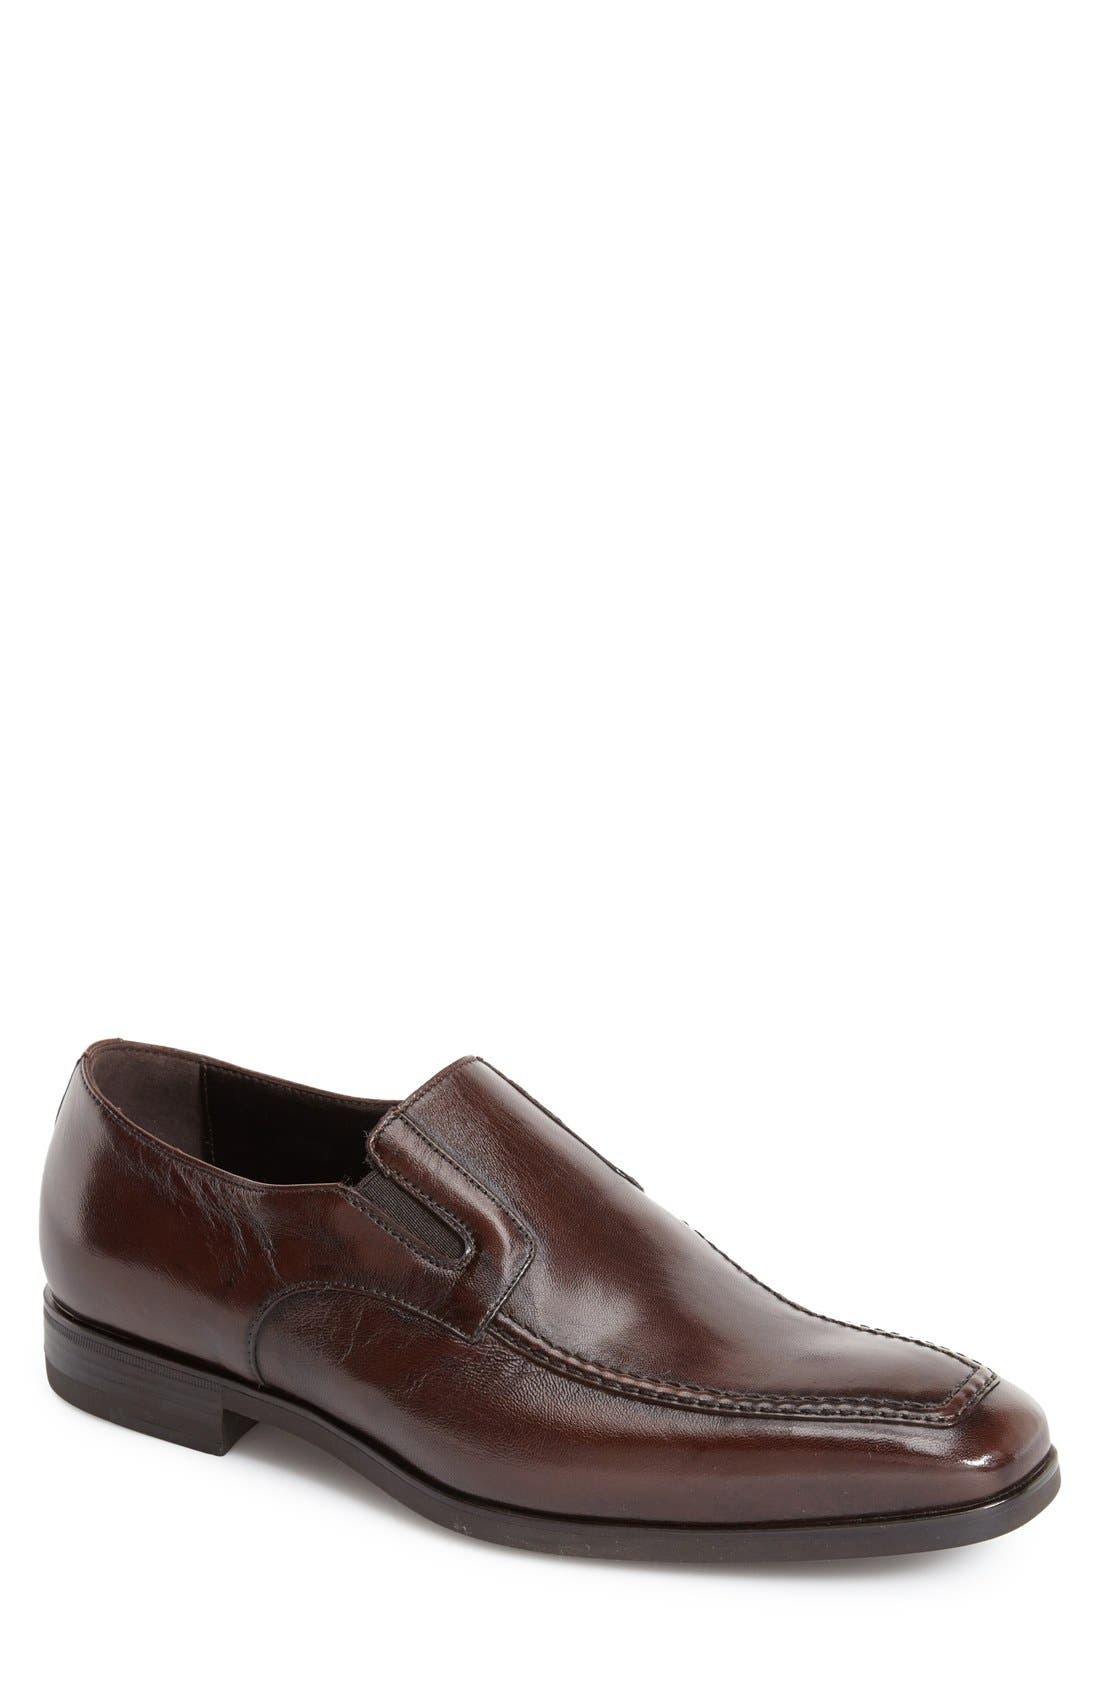 'Blaze' Venetian Loafer,                         Main,                         color, Brown